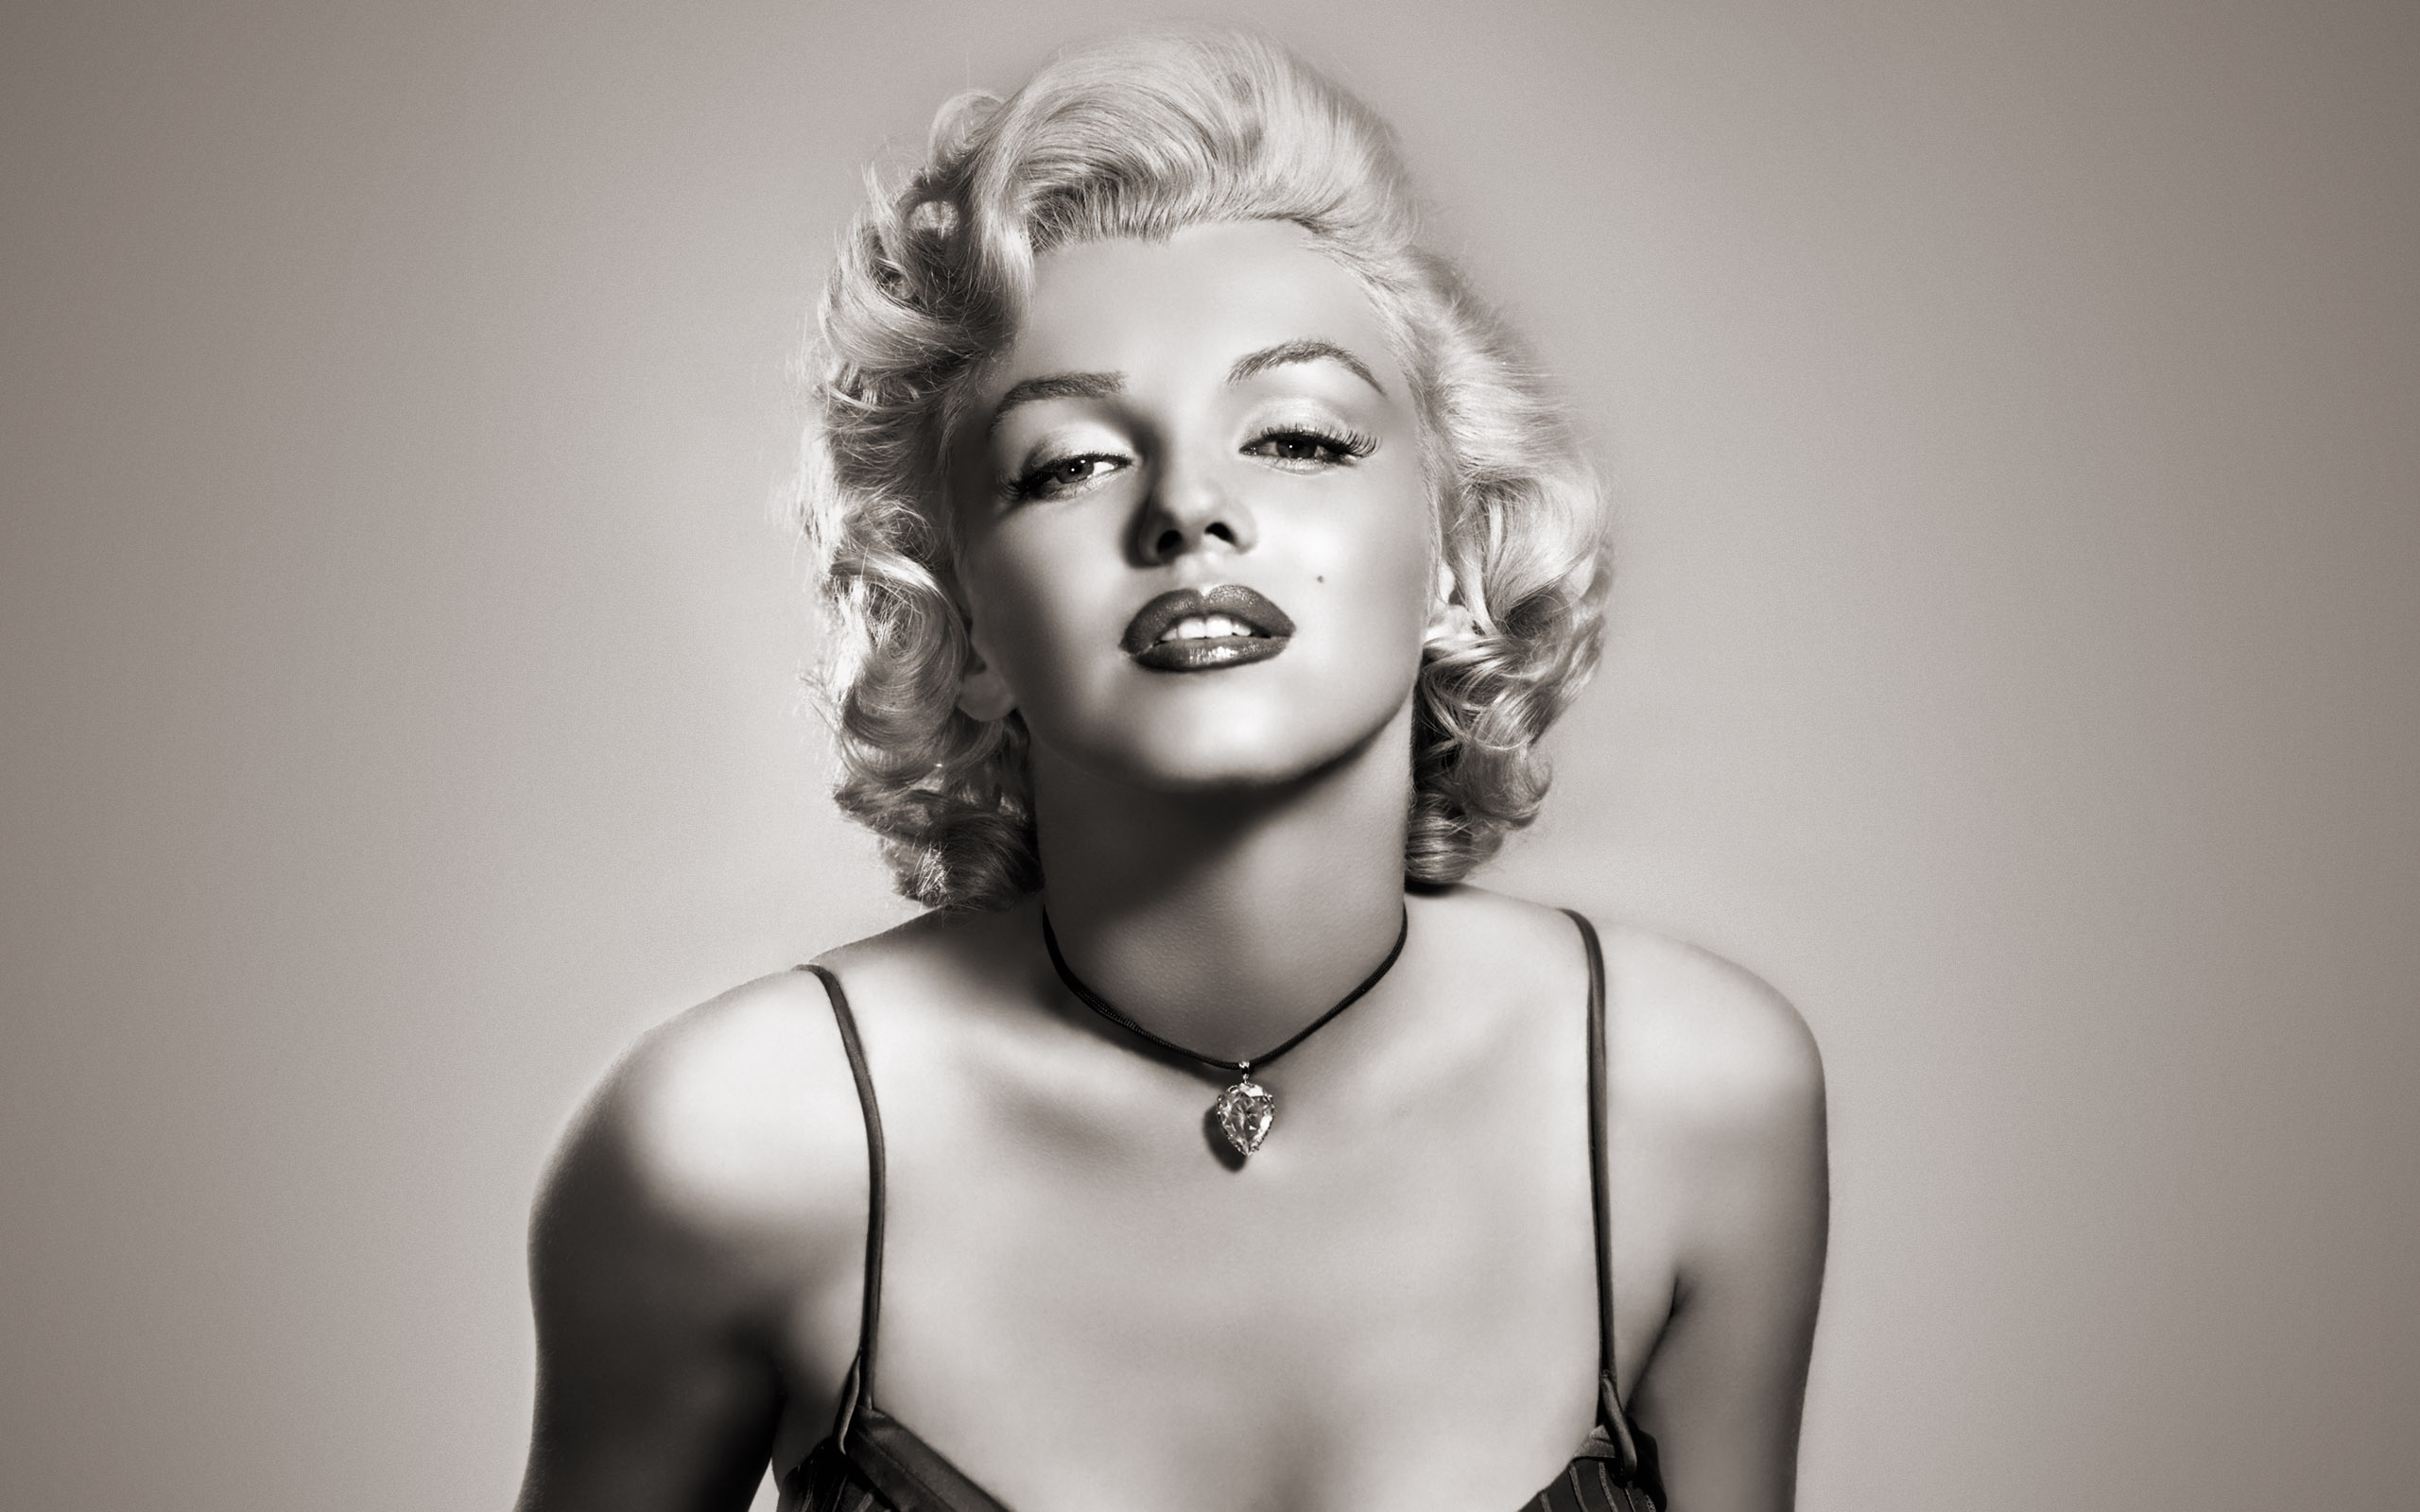 The 10 Most Iconic Moments Of Marilyn Monroe